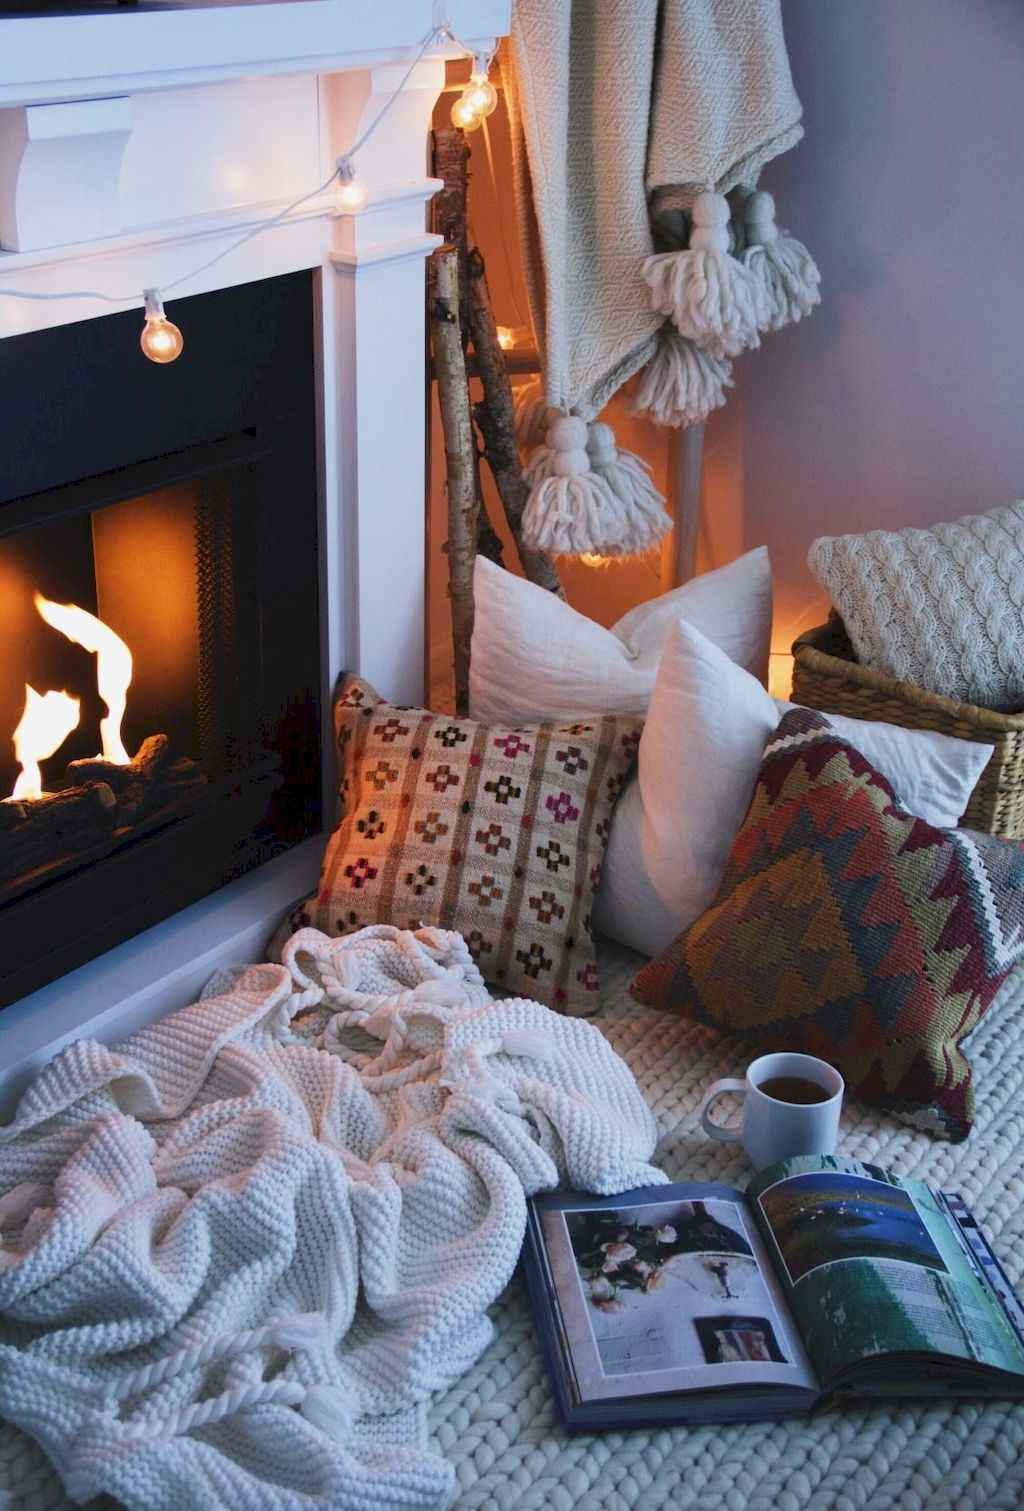 Cozy apartment decorating ideas on a budget (2)